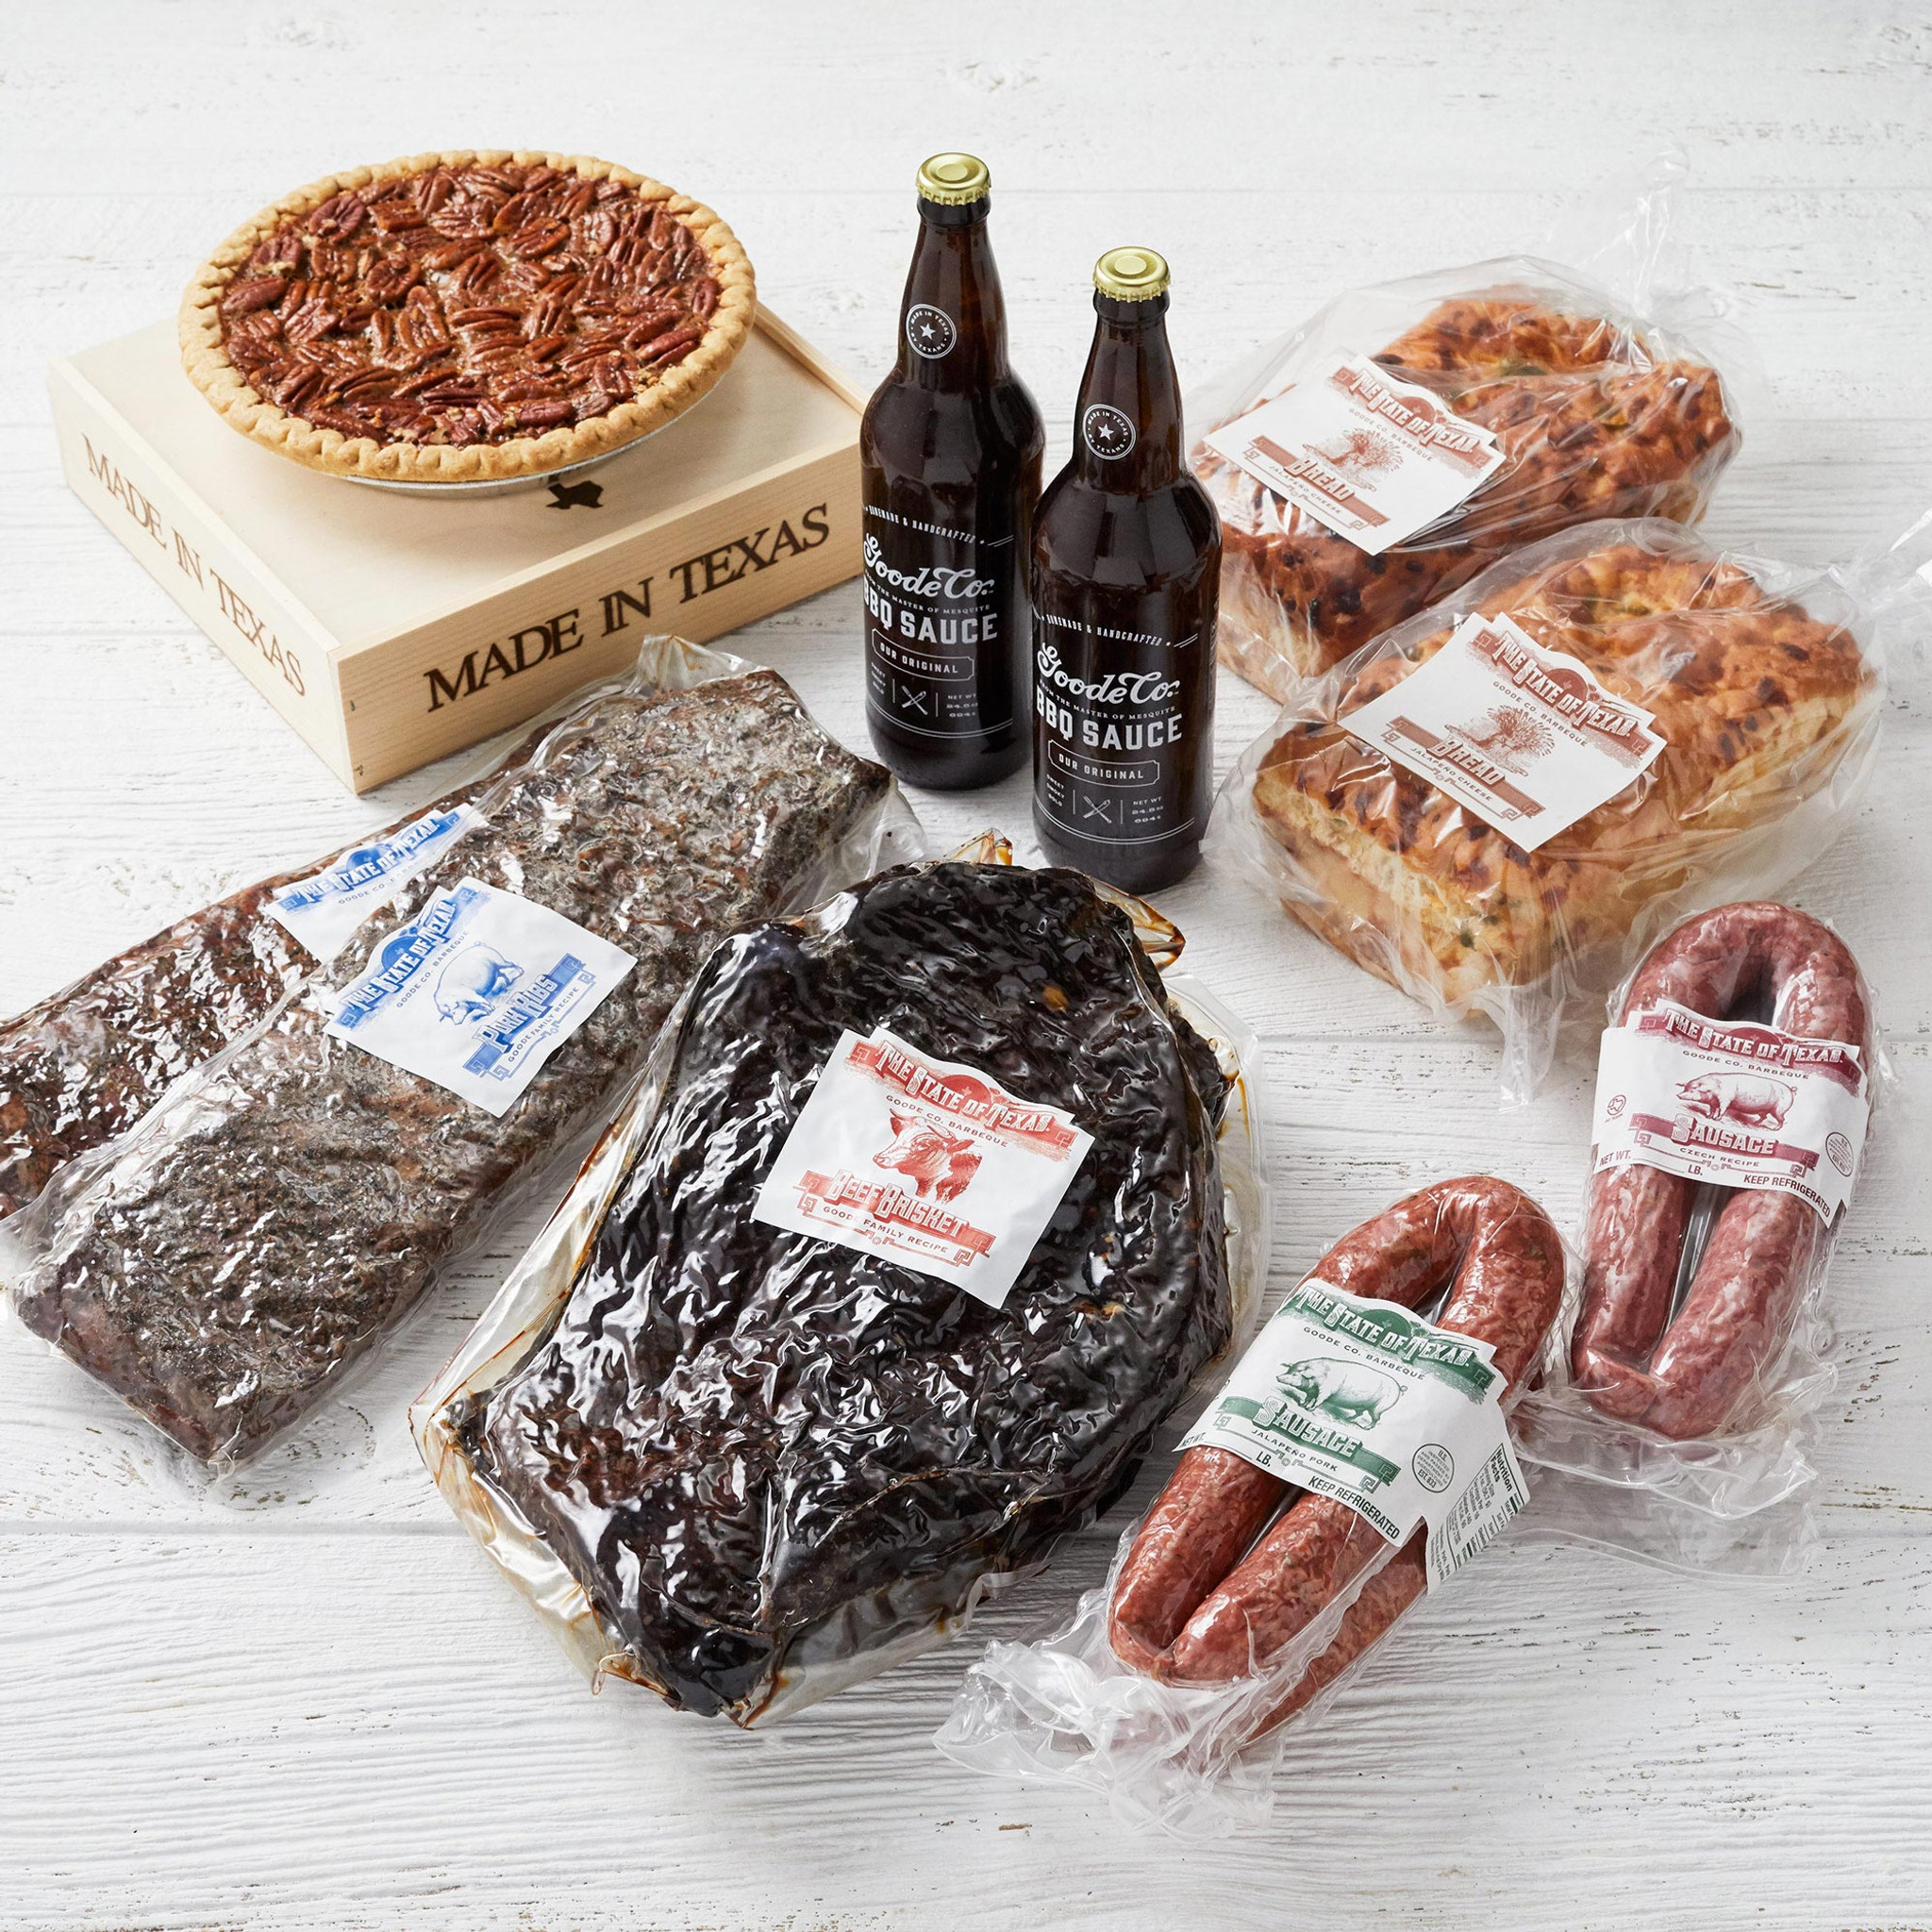 Shipping packaging of vacuum-sealed brisket, 2 slabs of ribs, 4 links of Texas sausage, 2 BBQ sauce bottles, and 2 loaves of jalapeño cheese bread, and our Brazos Bottom Pecan Pie in a wooden gift box.